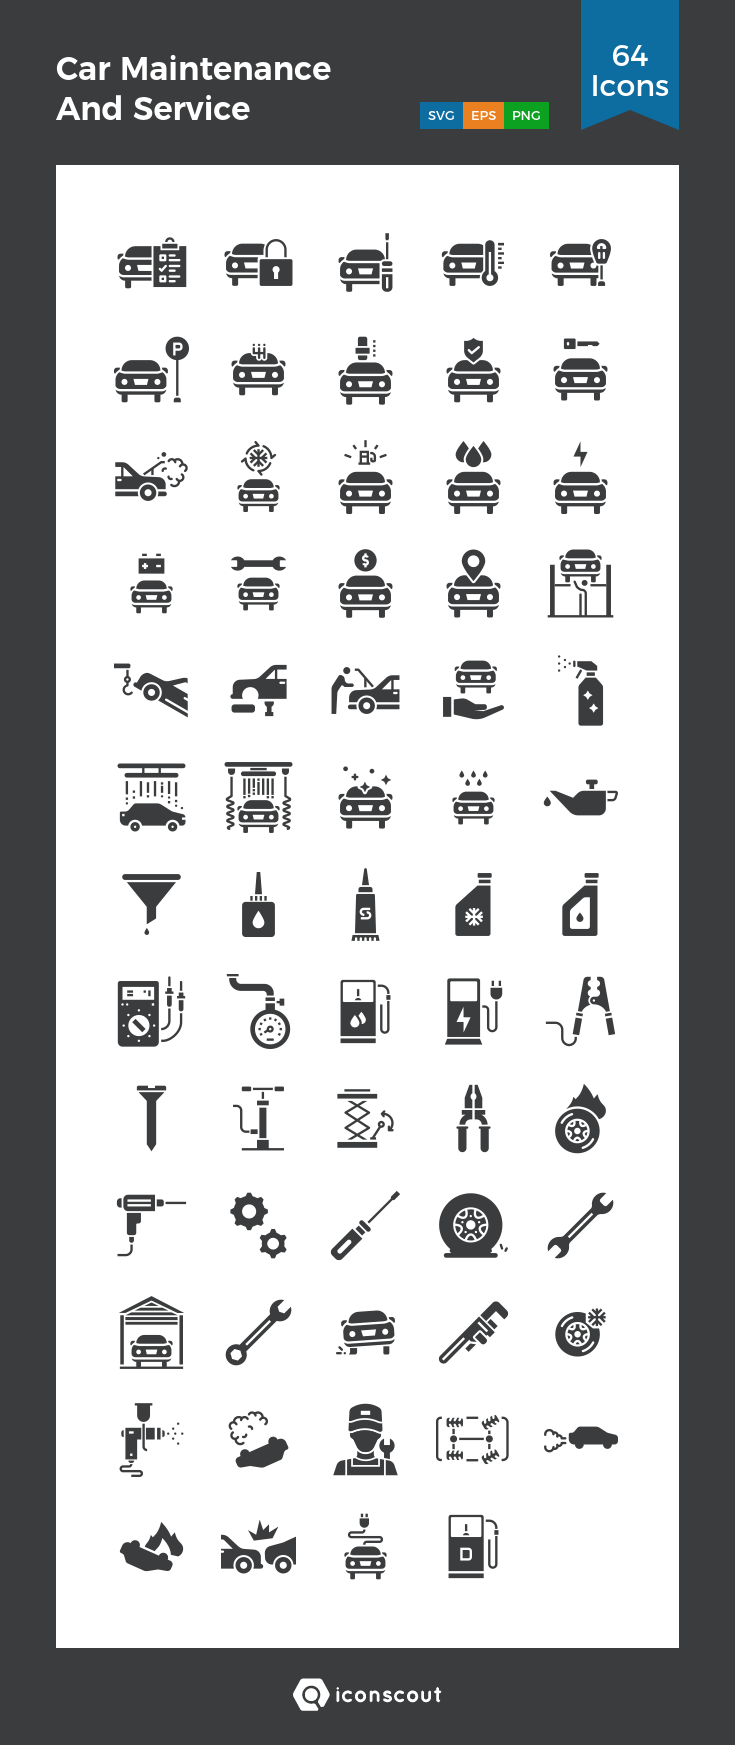 Download Car Maintenance And Service Icon Pack Available In Svg Png Eps Ai Icon Fonts Car Maintenance Icon Pack Maintenance